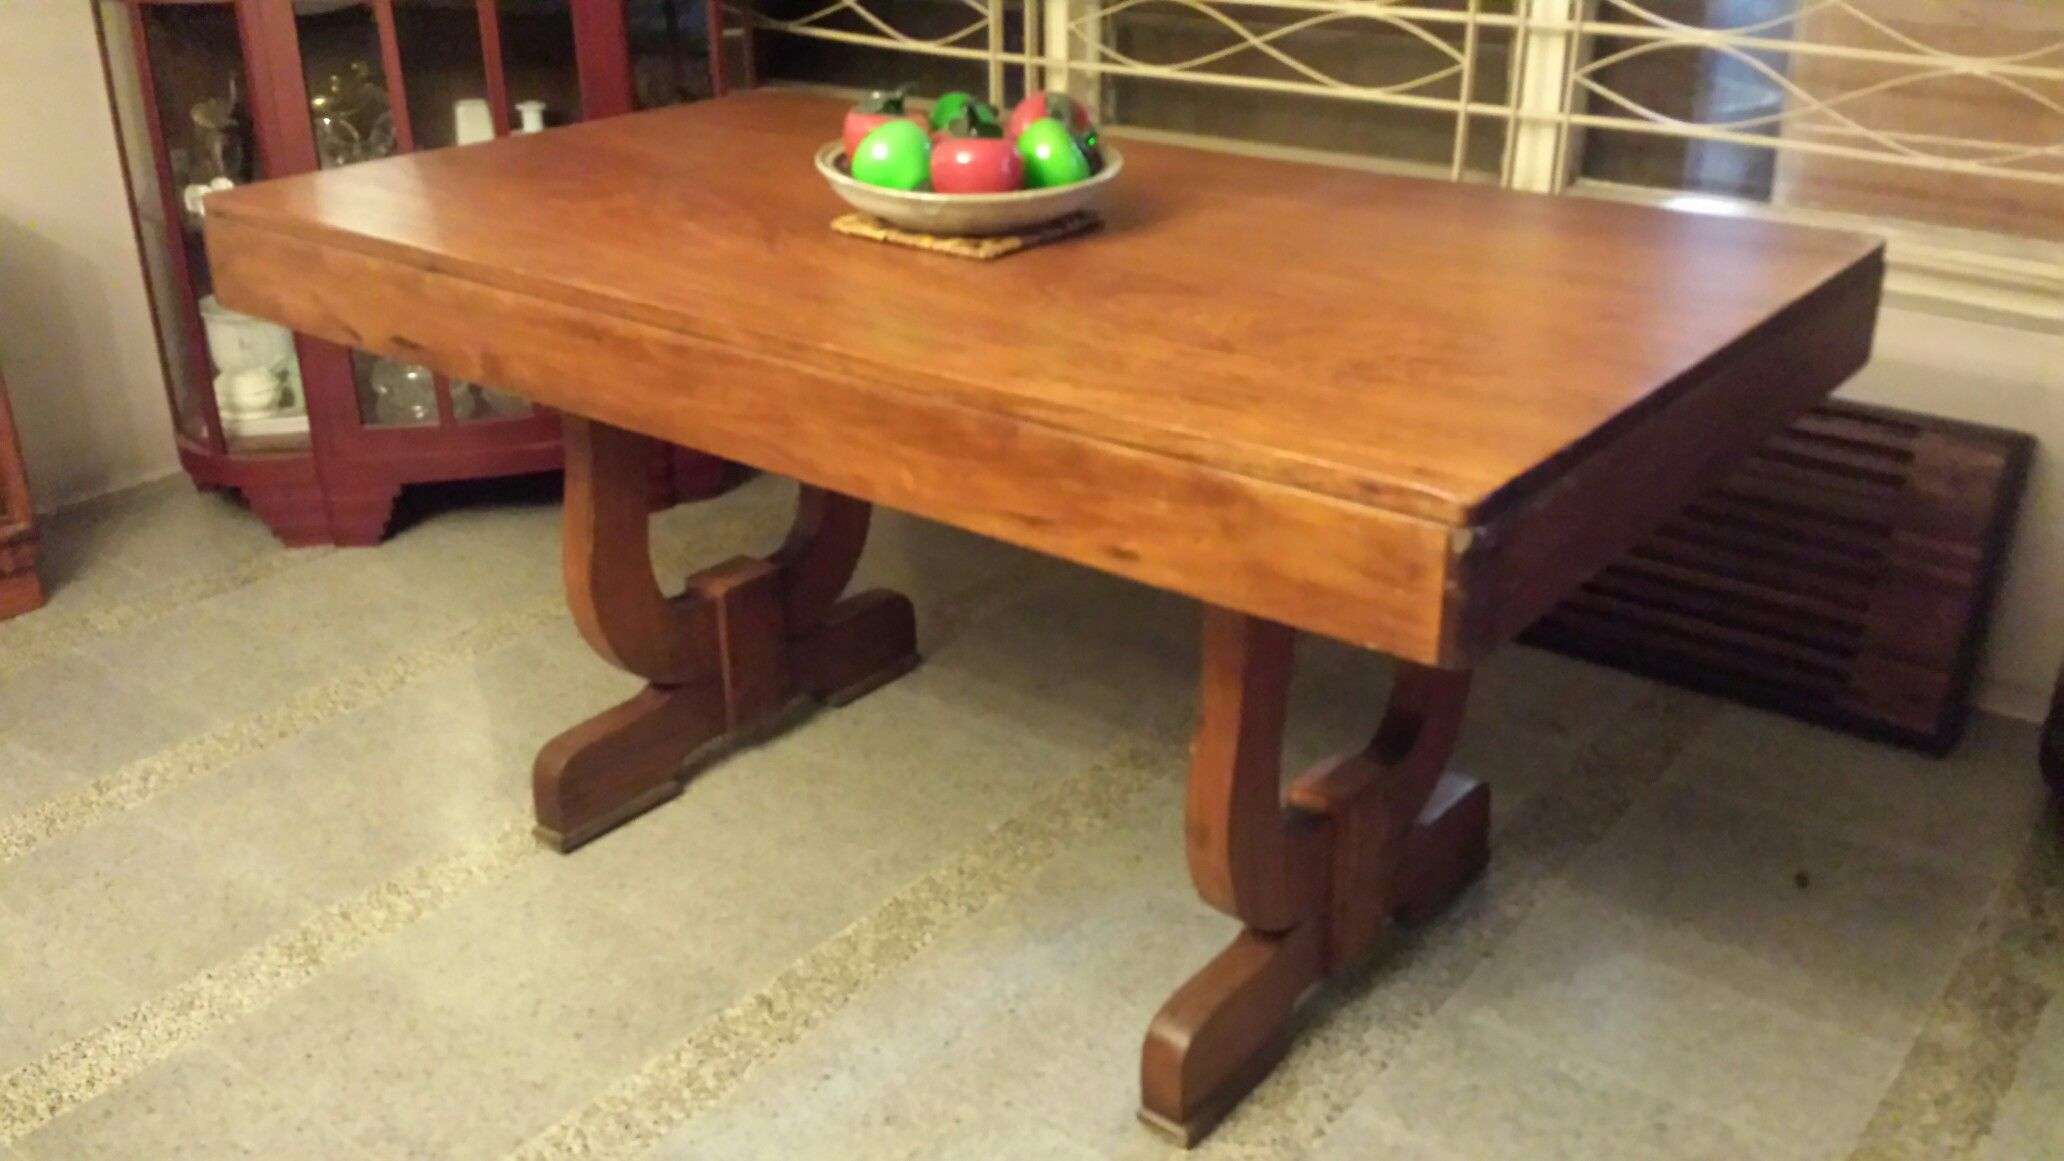 At The Table Or On The Table Narra Dining Table Dining Table Table Furniture